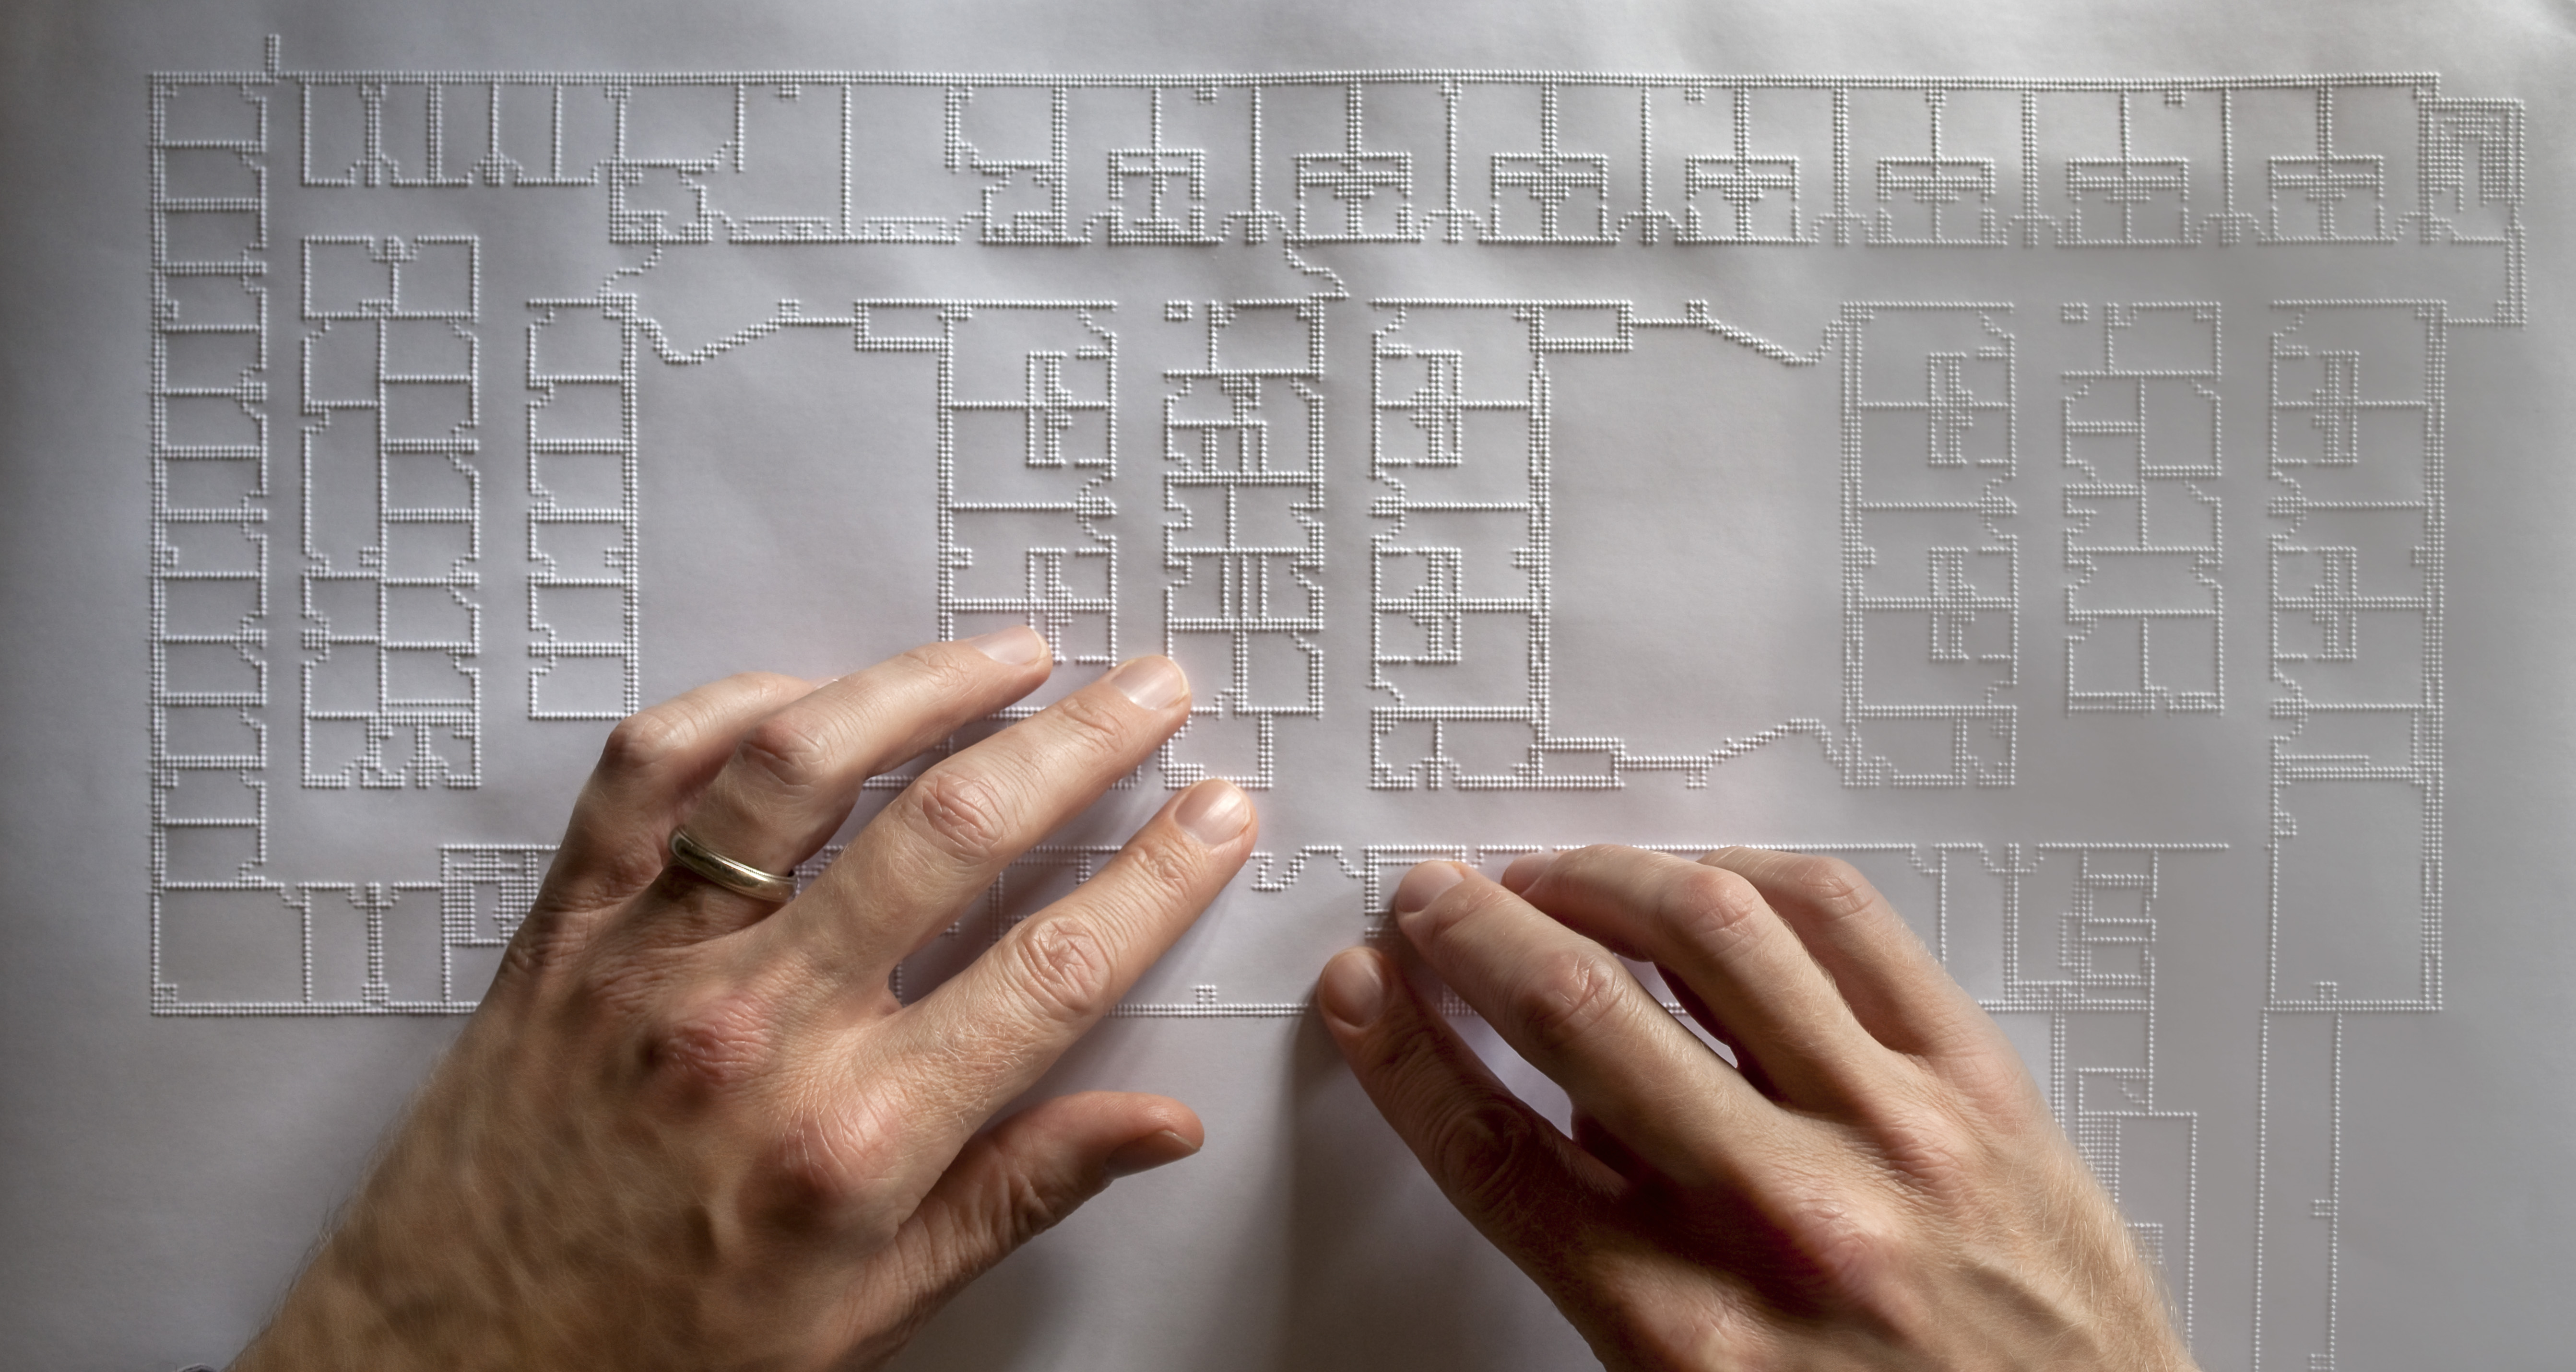 A tactile architectural plan from an embossing printer